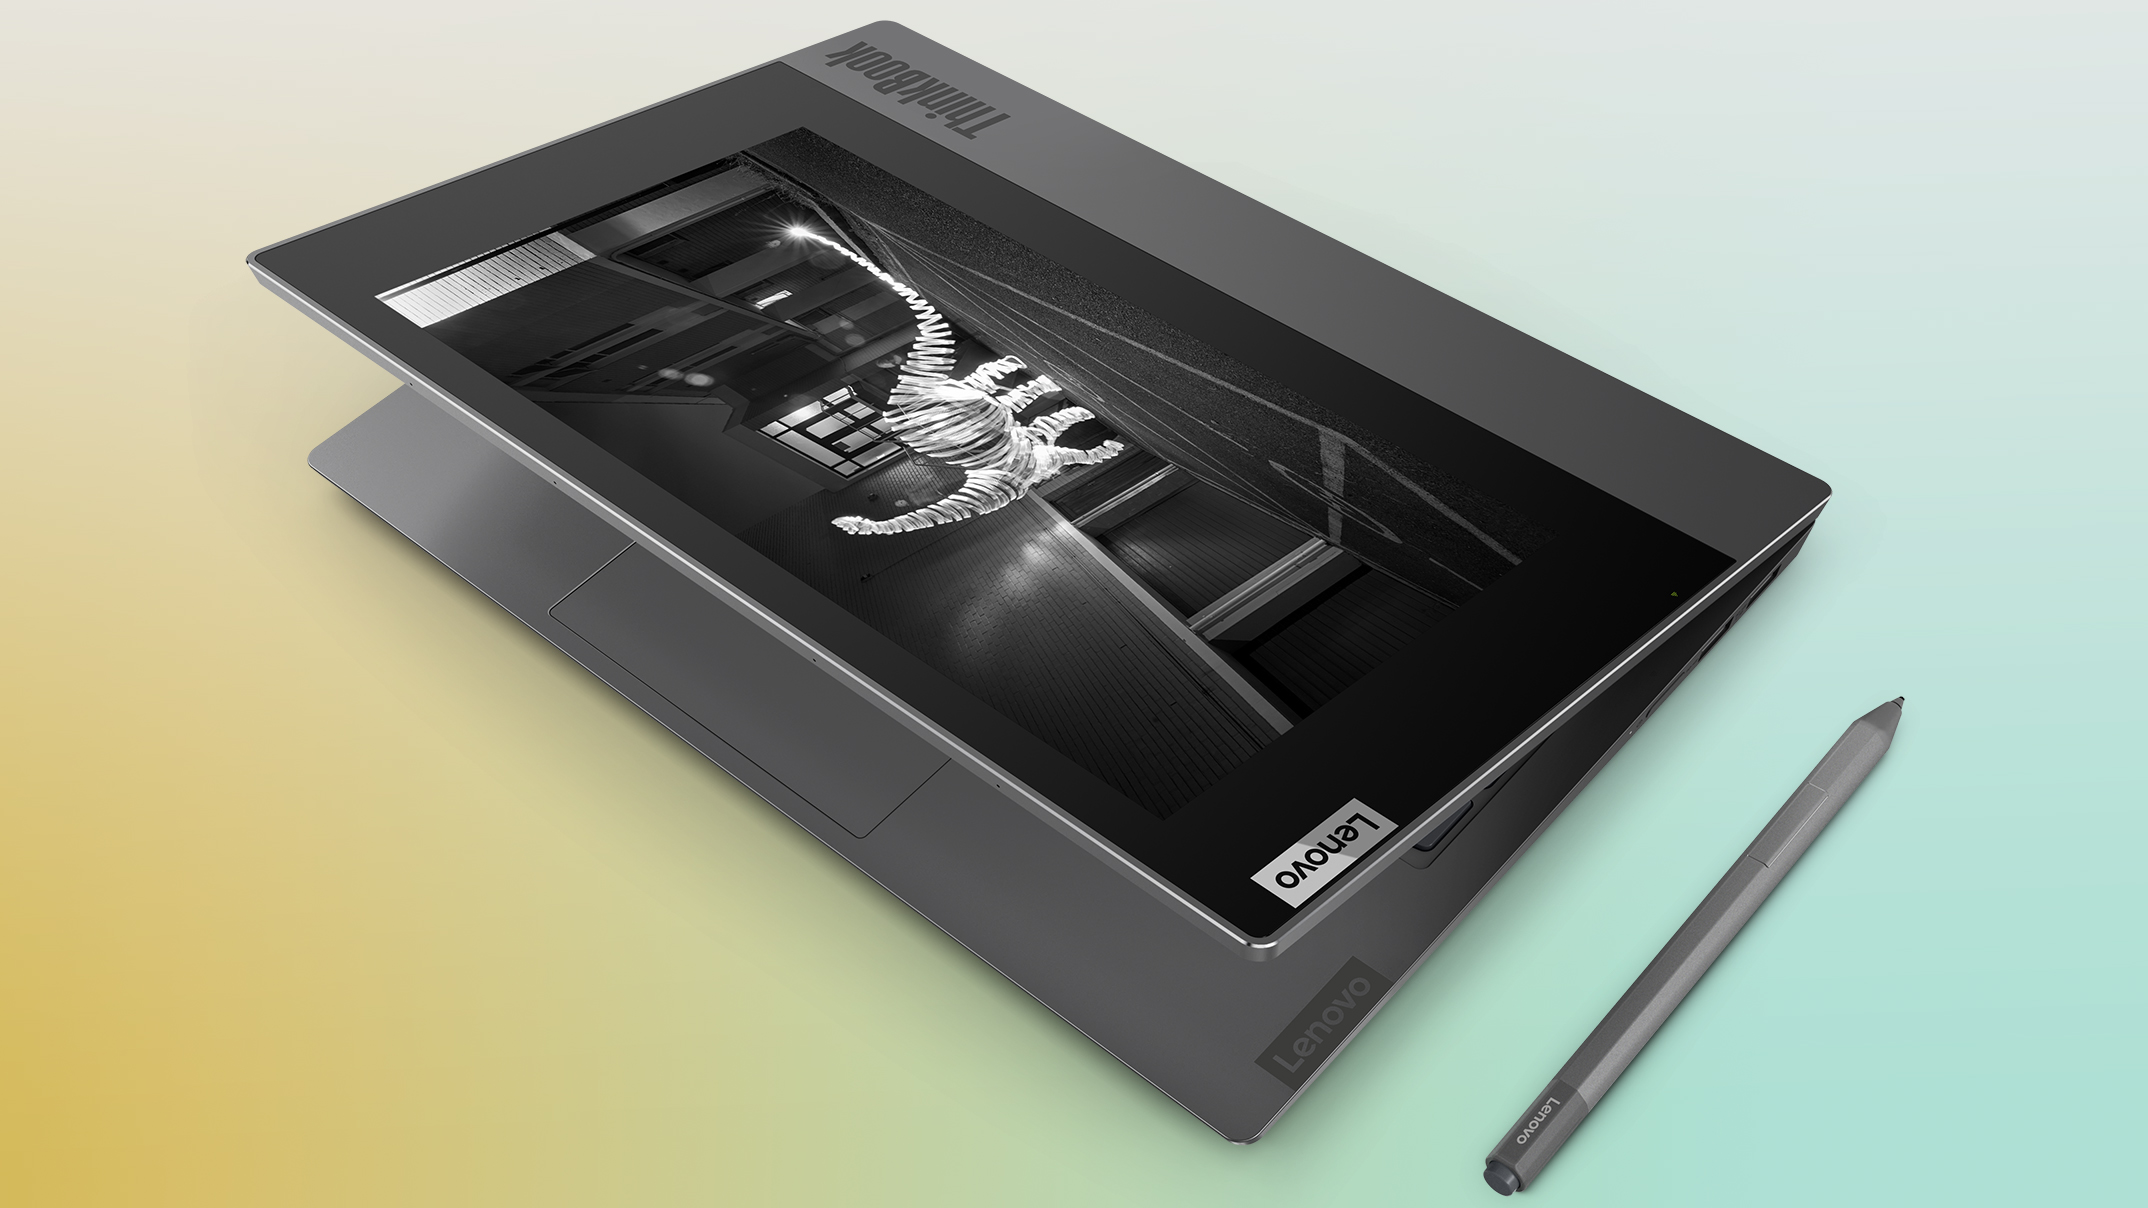 Lenovo's ThinkBook Plus has an E Ink touchscreen built into the lid